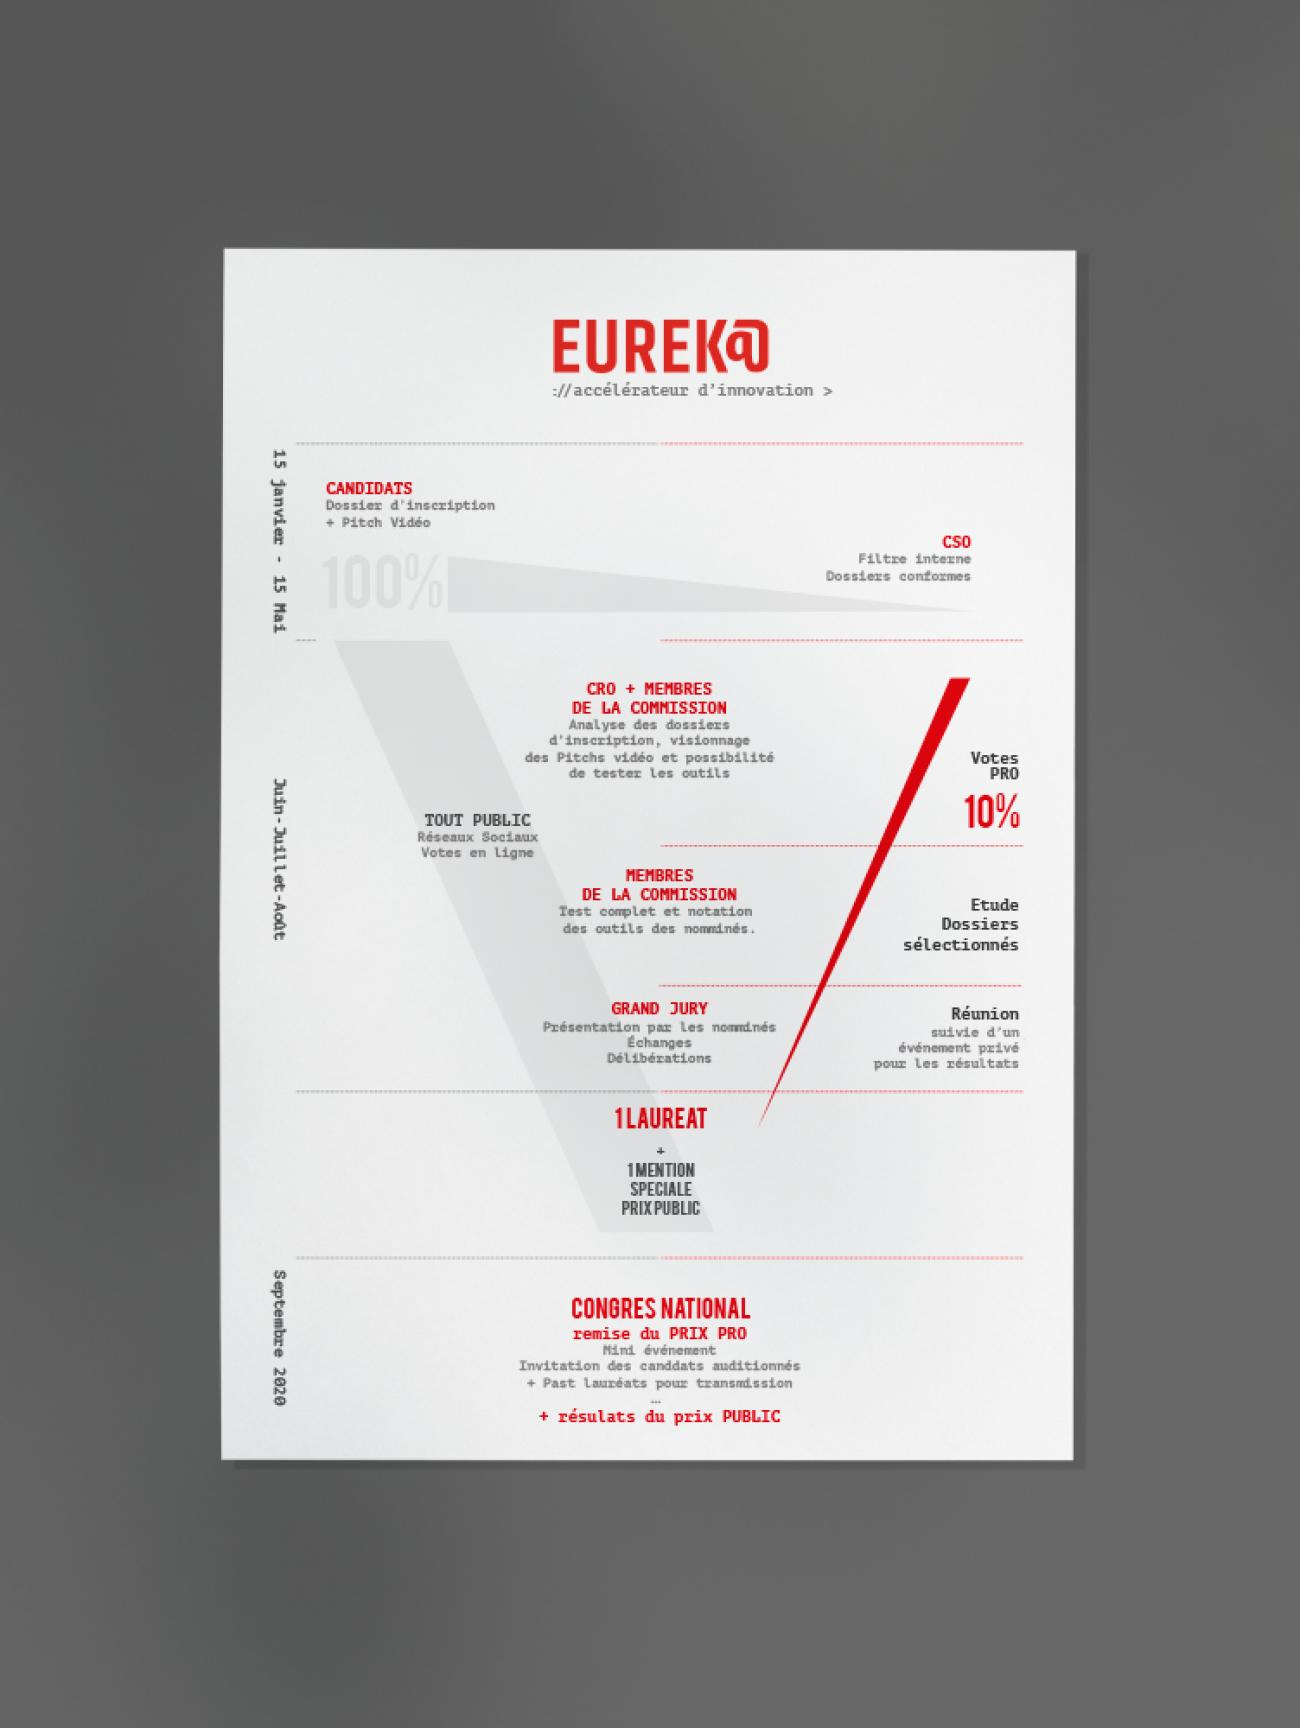 Mockup_plan_communication_eureka